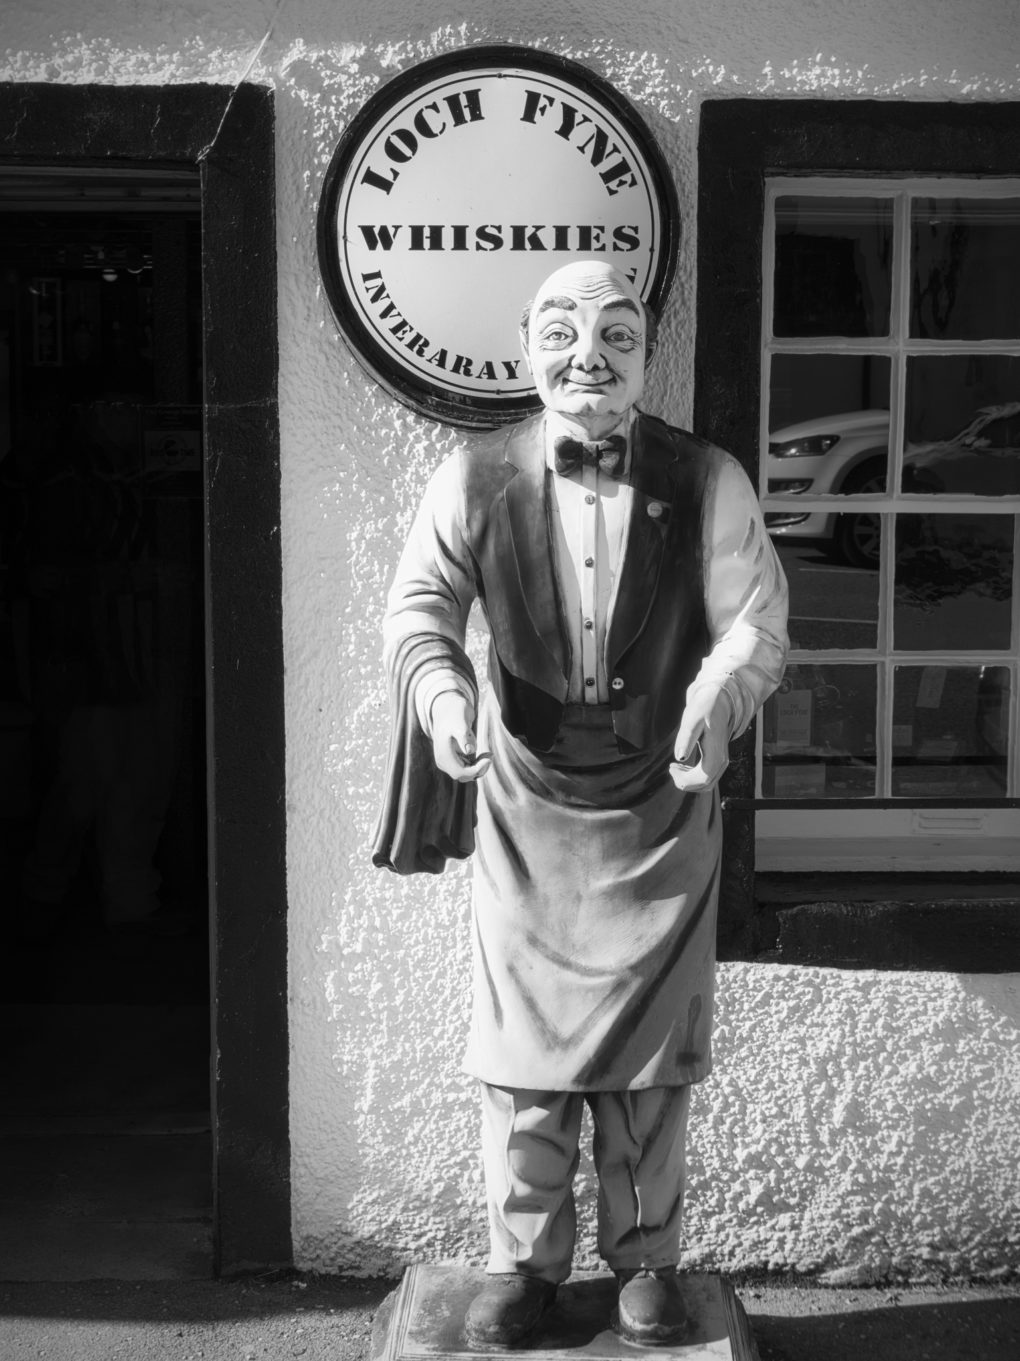 Statue outside the Loch Fyne Whiskies shop, Inverary